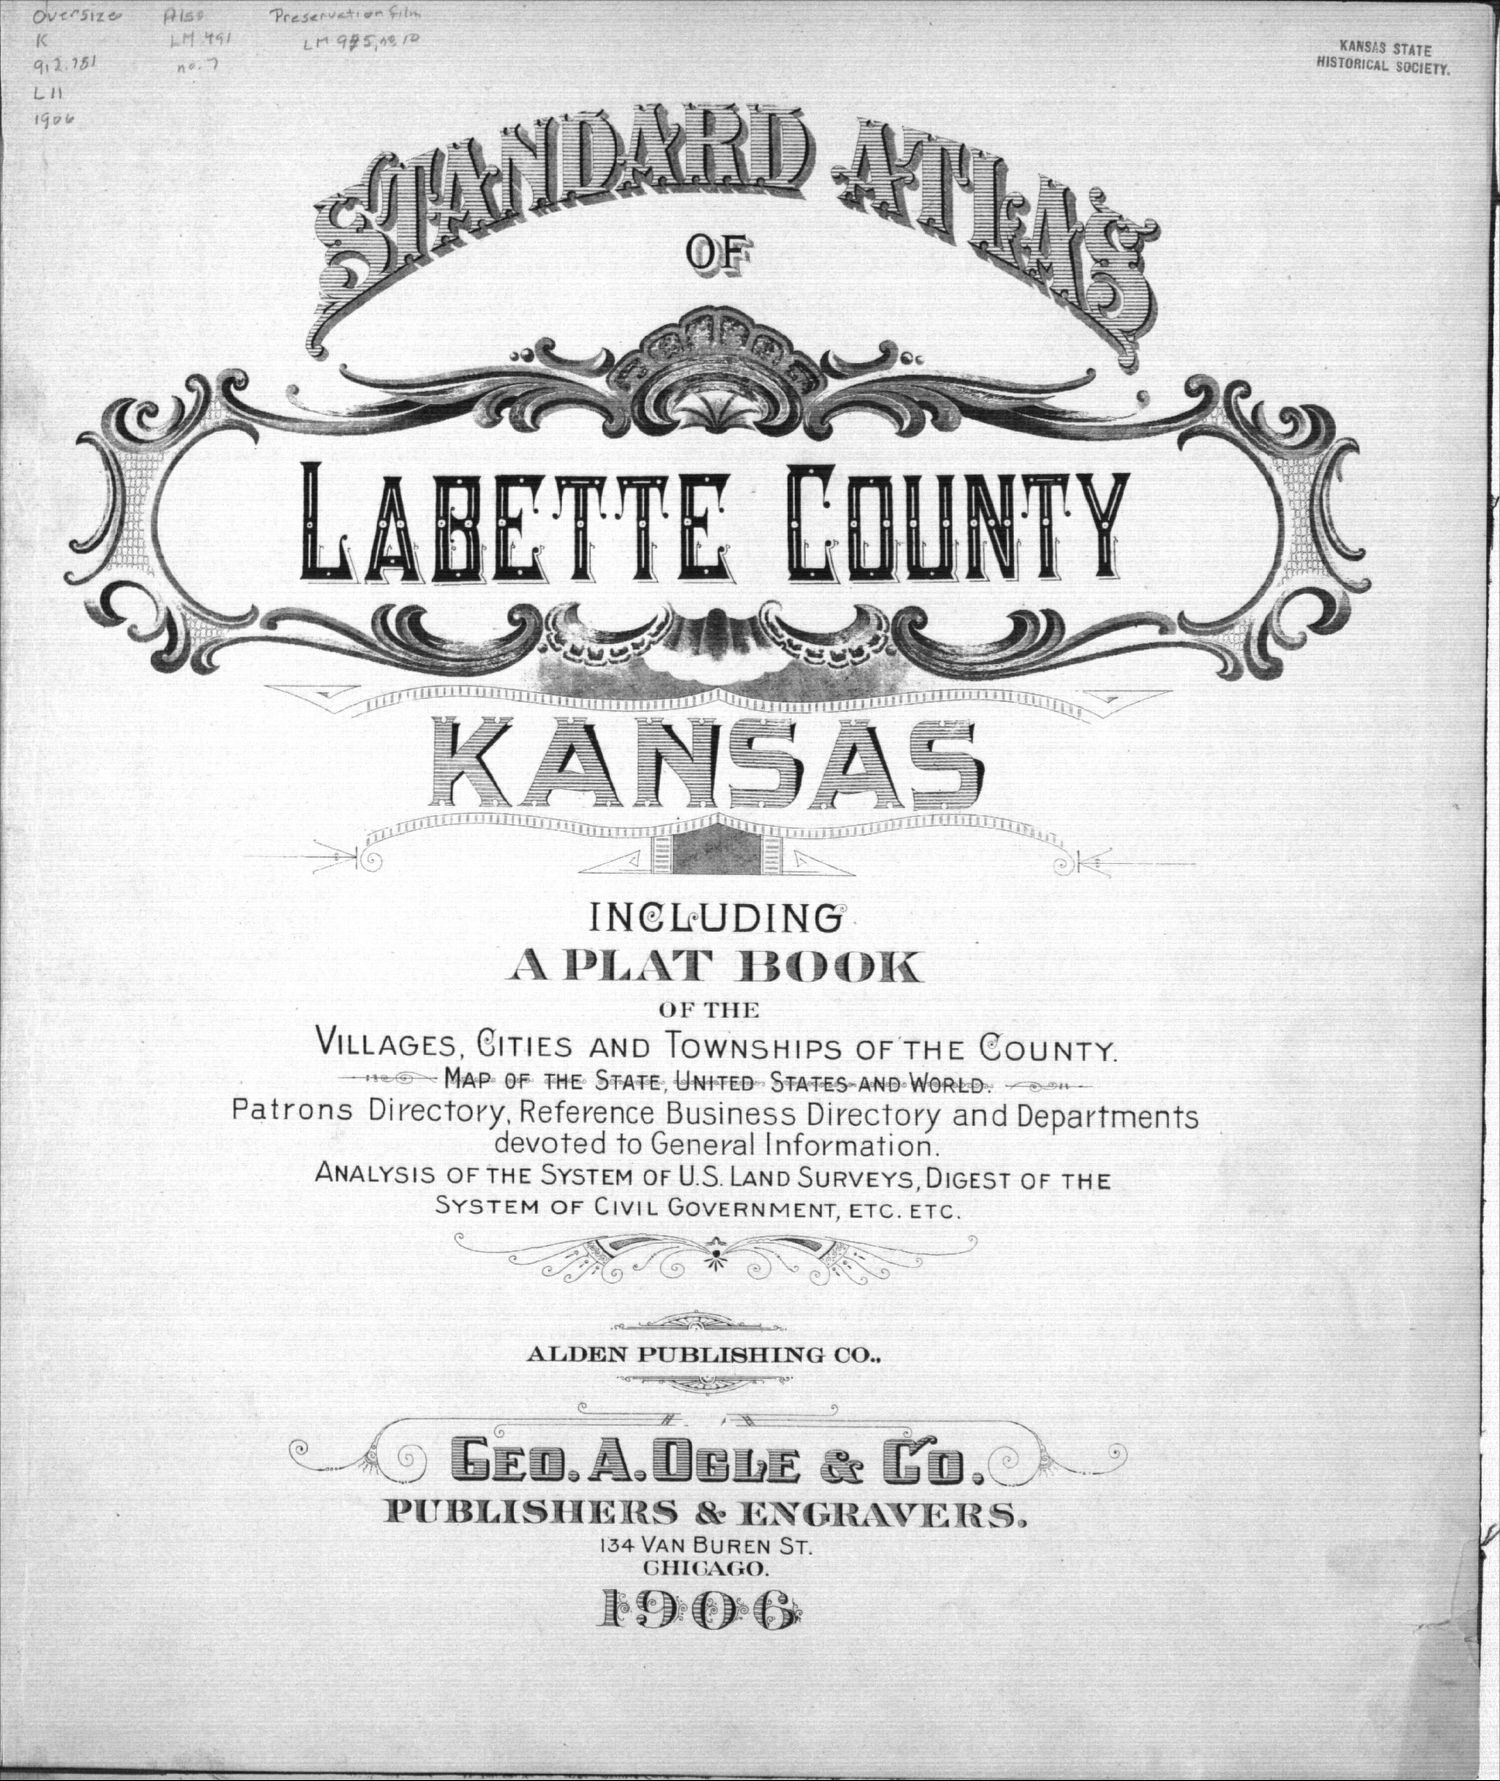 Standard atlas of Labette County, Kansas - Title Page